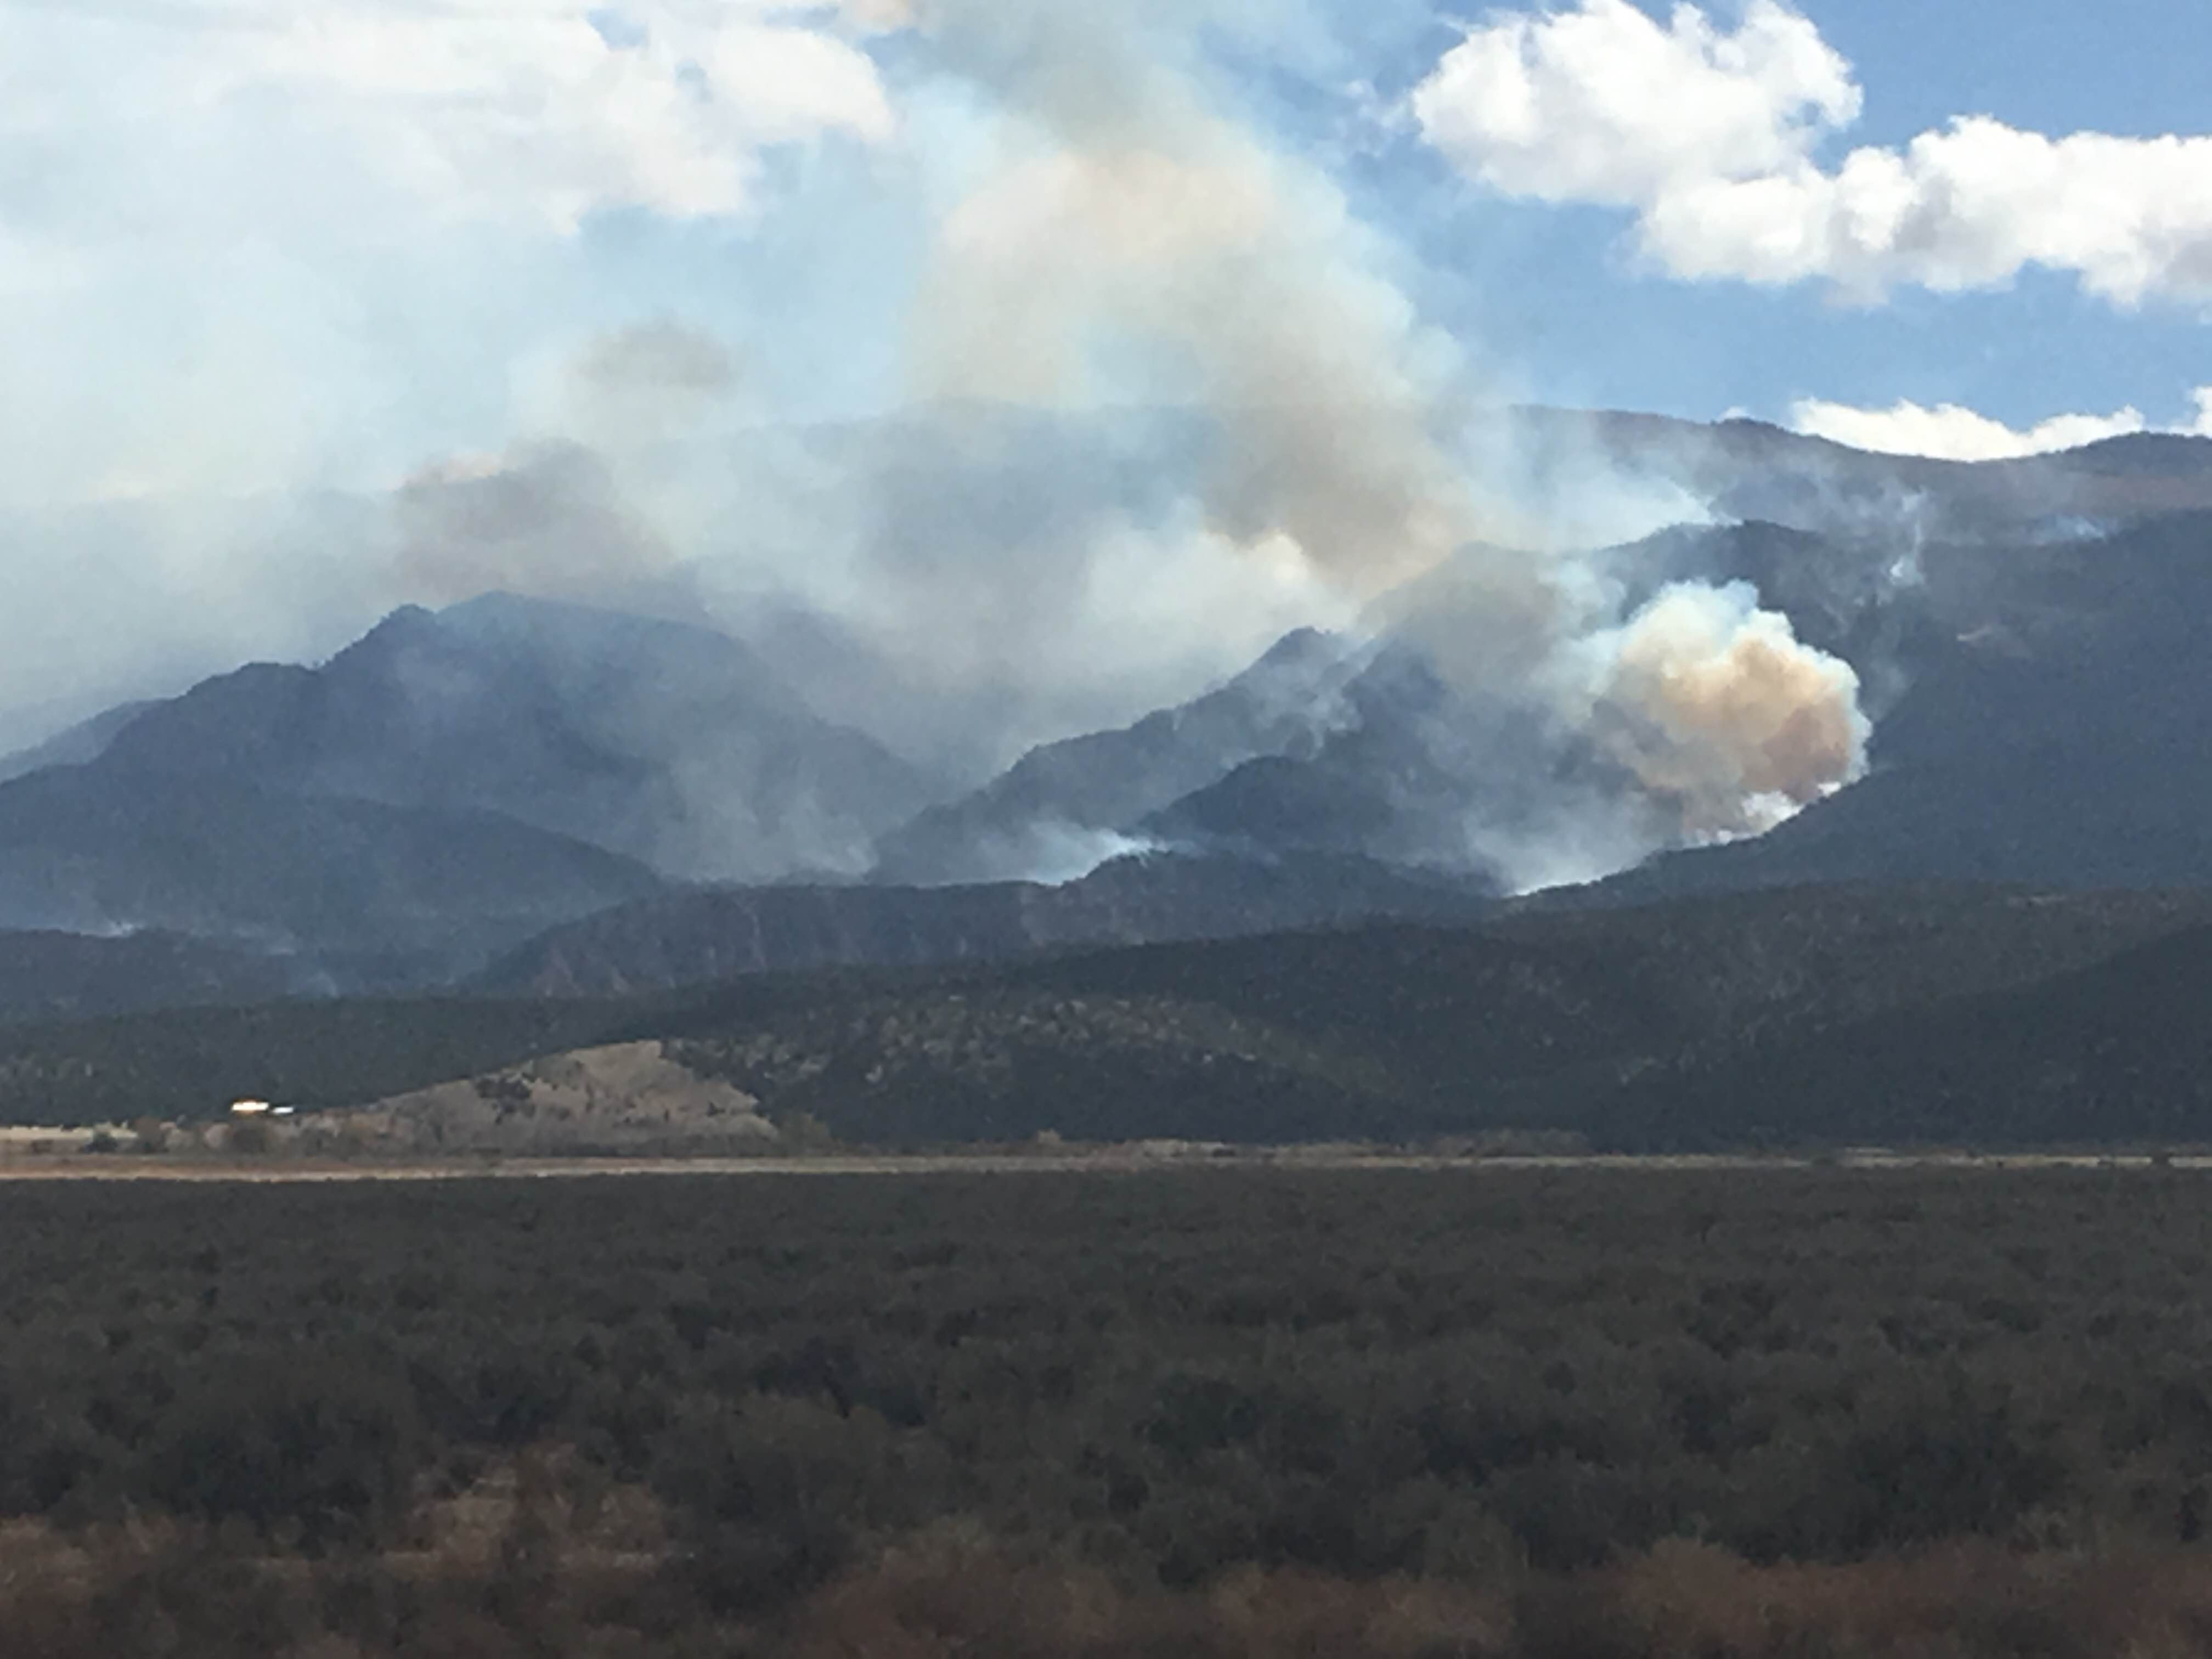 Smoke from the Hicks Creek Fire as of Monday afternoon. The Fire has grown the 1,500 acres since it was first reported Sunday afternoon. The fire itself is burning about 3 miles southwest of Cedar City Iron County, Utah, Oct. 17, 2016 | Photo by Tracie Sullivan, Cedar City News / St. George News